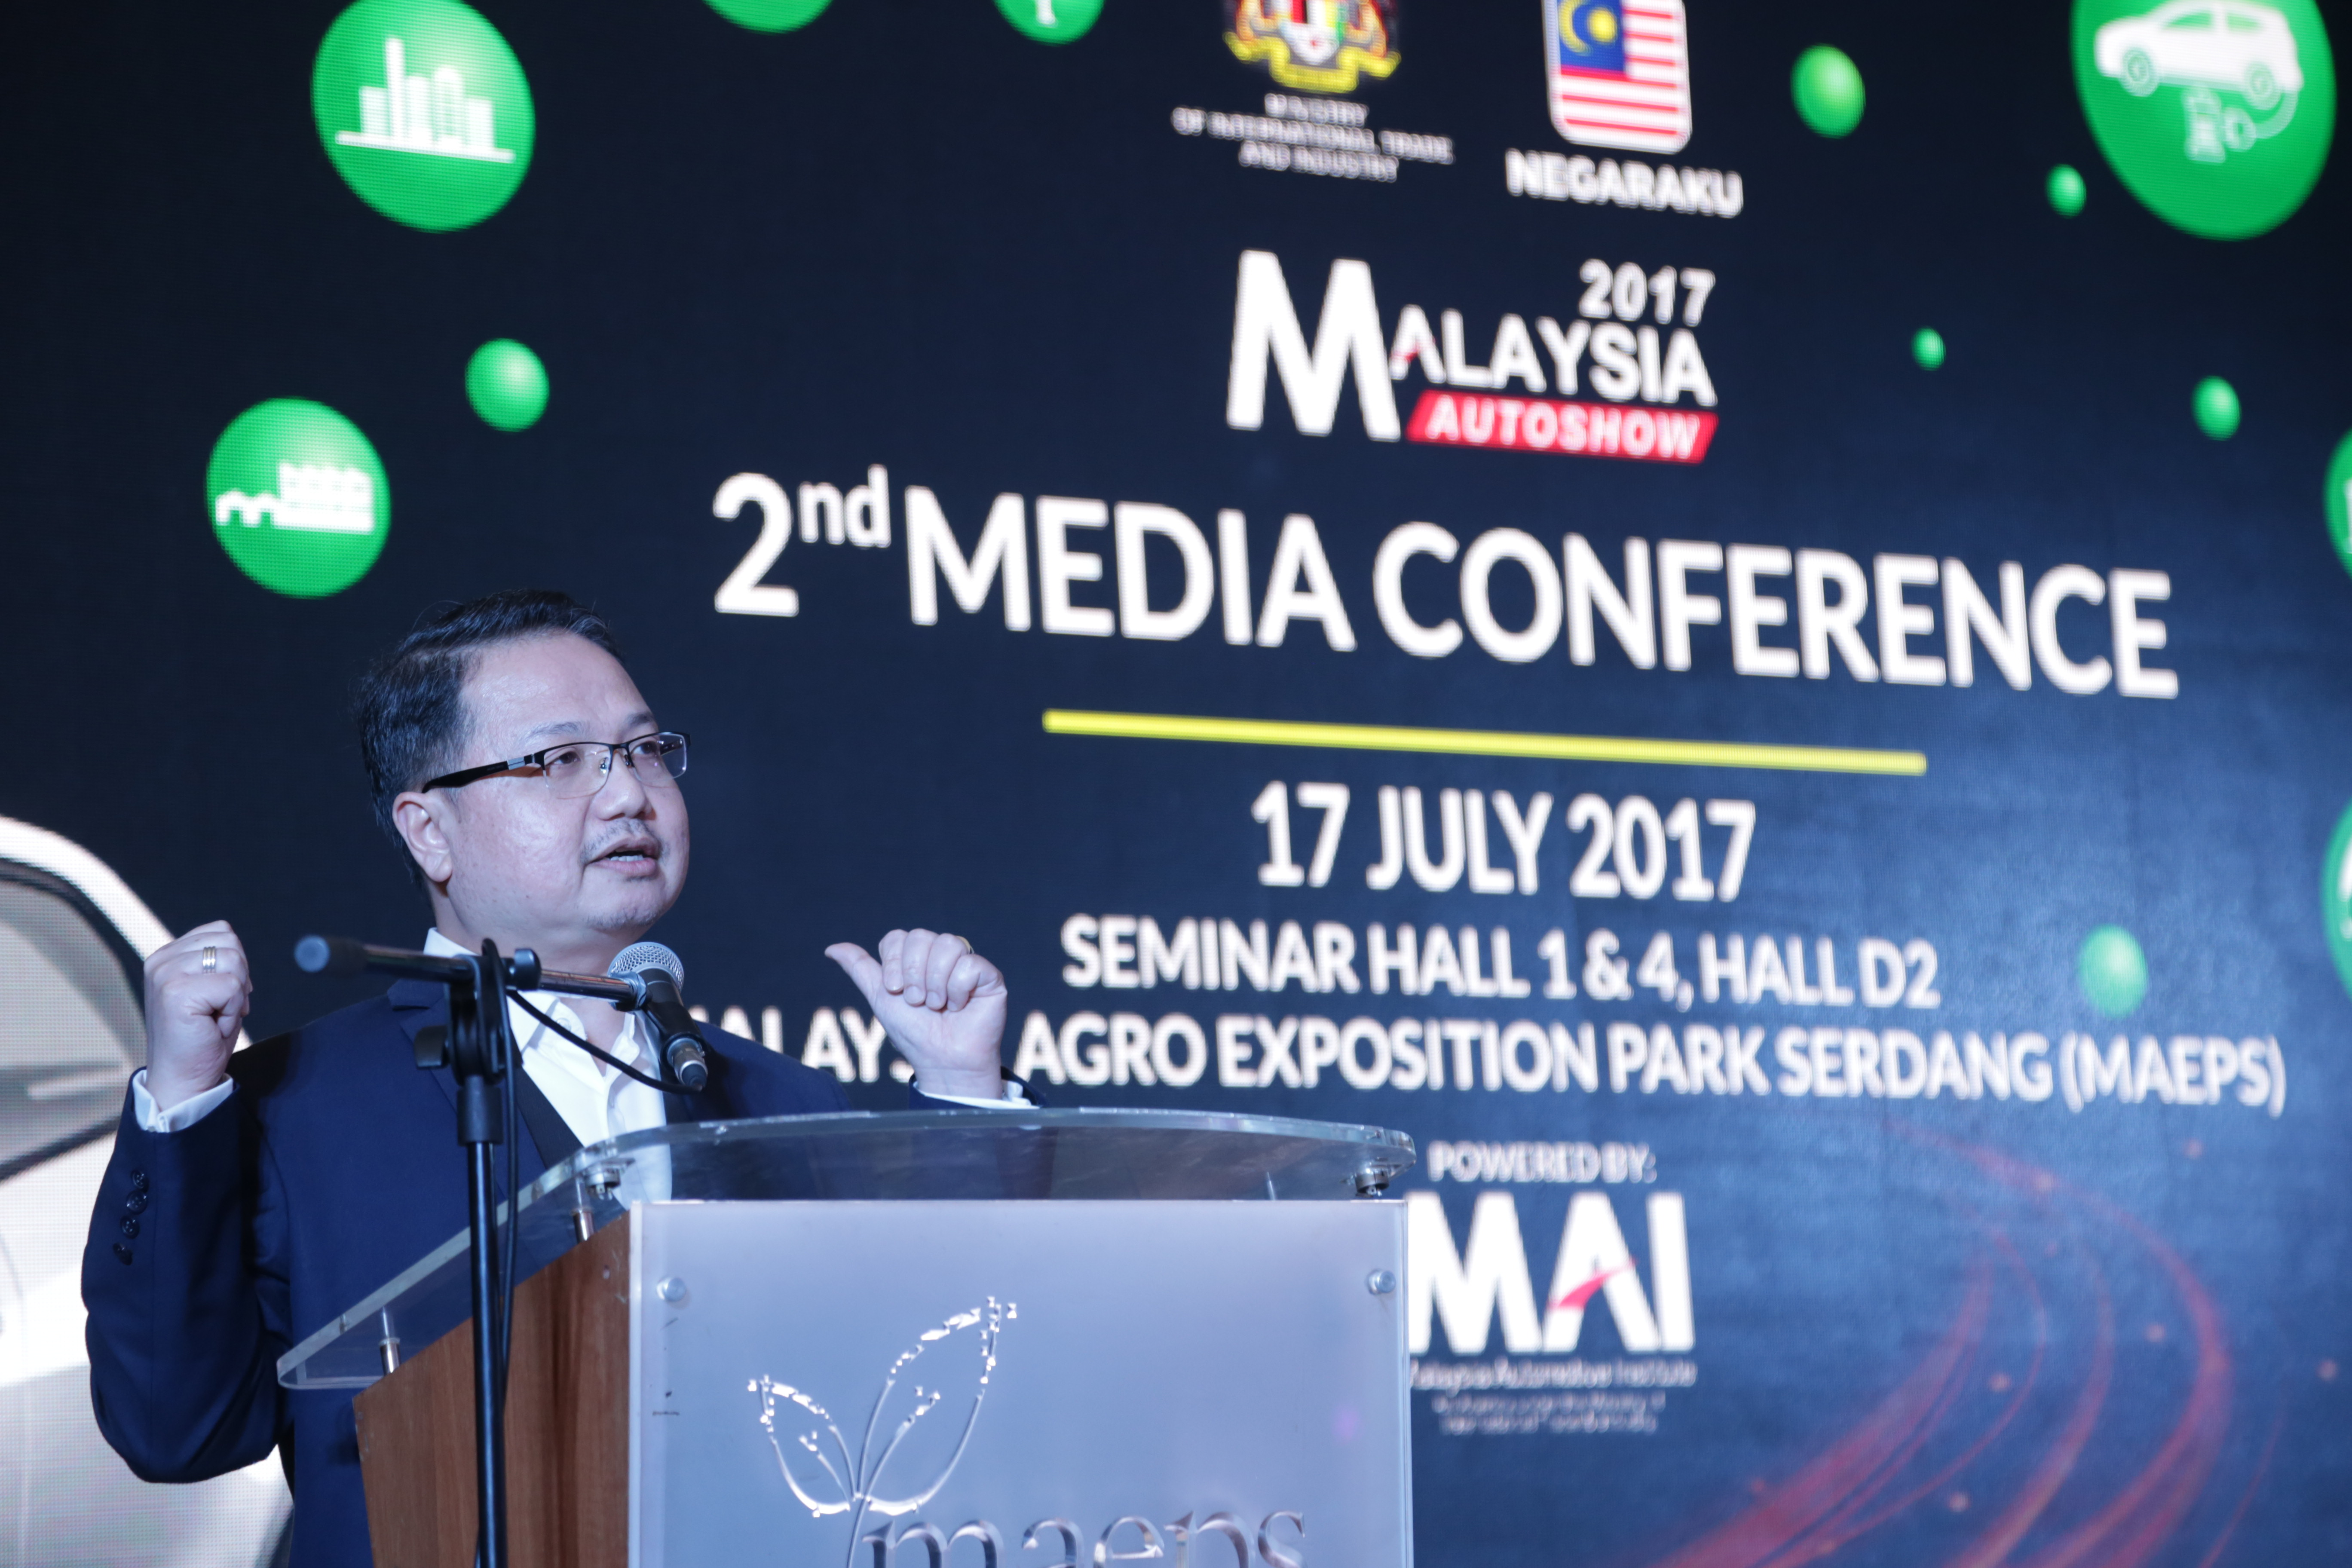 Malaysia Automotive Institute's chief executive officer Dato' Madani Sahari delivering his speech during the Malaysia Autoshow 2017 Second Media Conference.